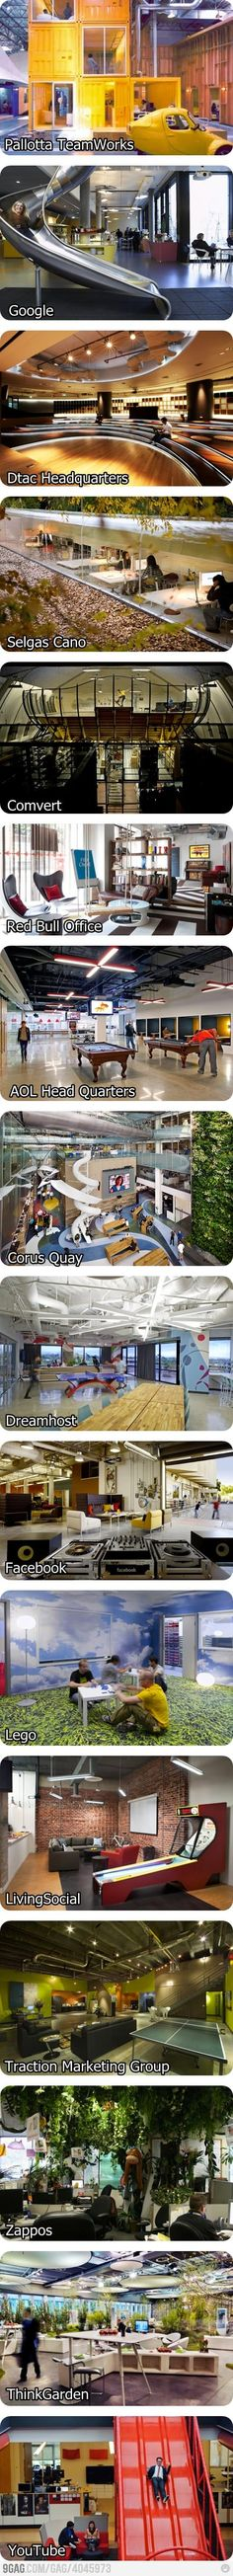 Awesome offices really gets the creativity